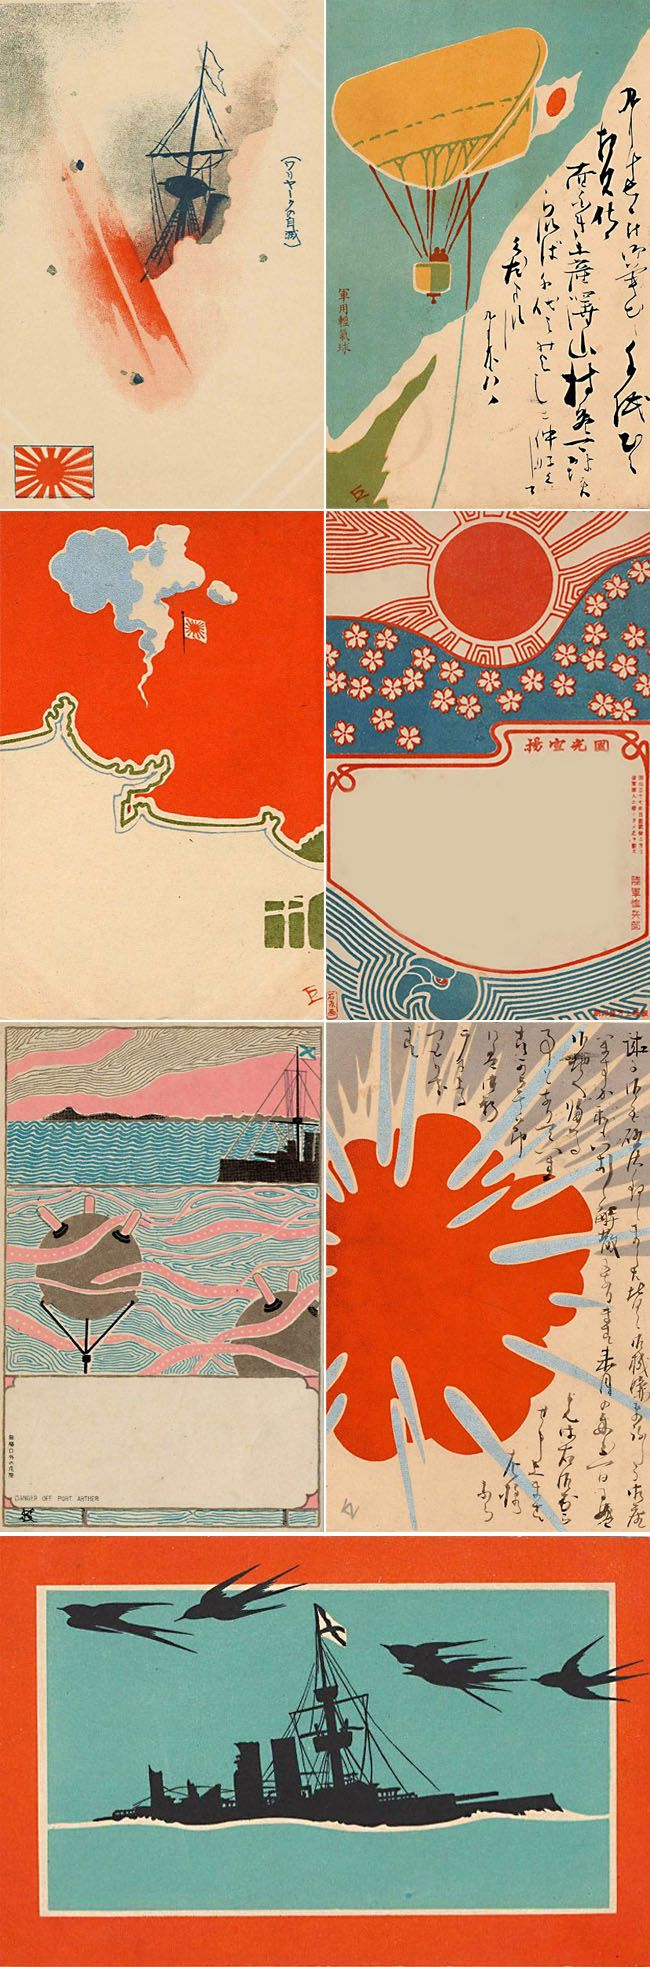 Beautiful collection of Japanese postcards from the Leonard A. Lauder Collection at the Museum of Fine Arts in Boston. via wolfeyebrows